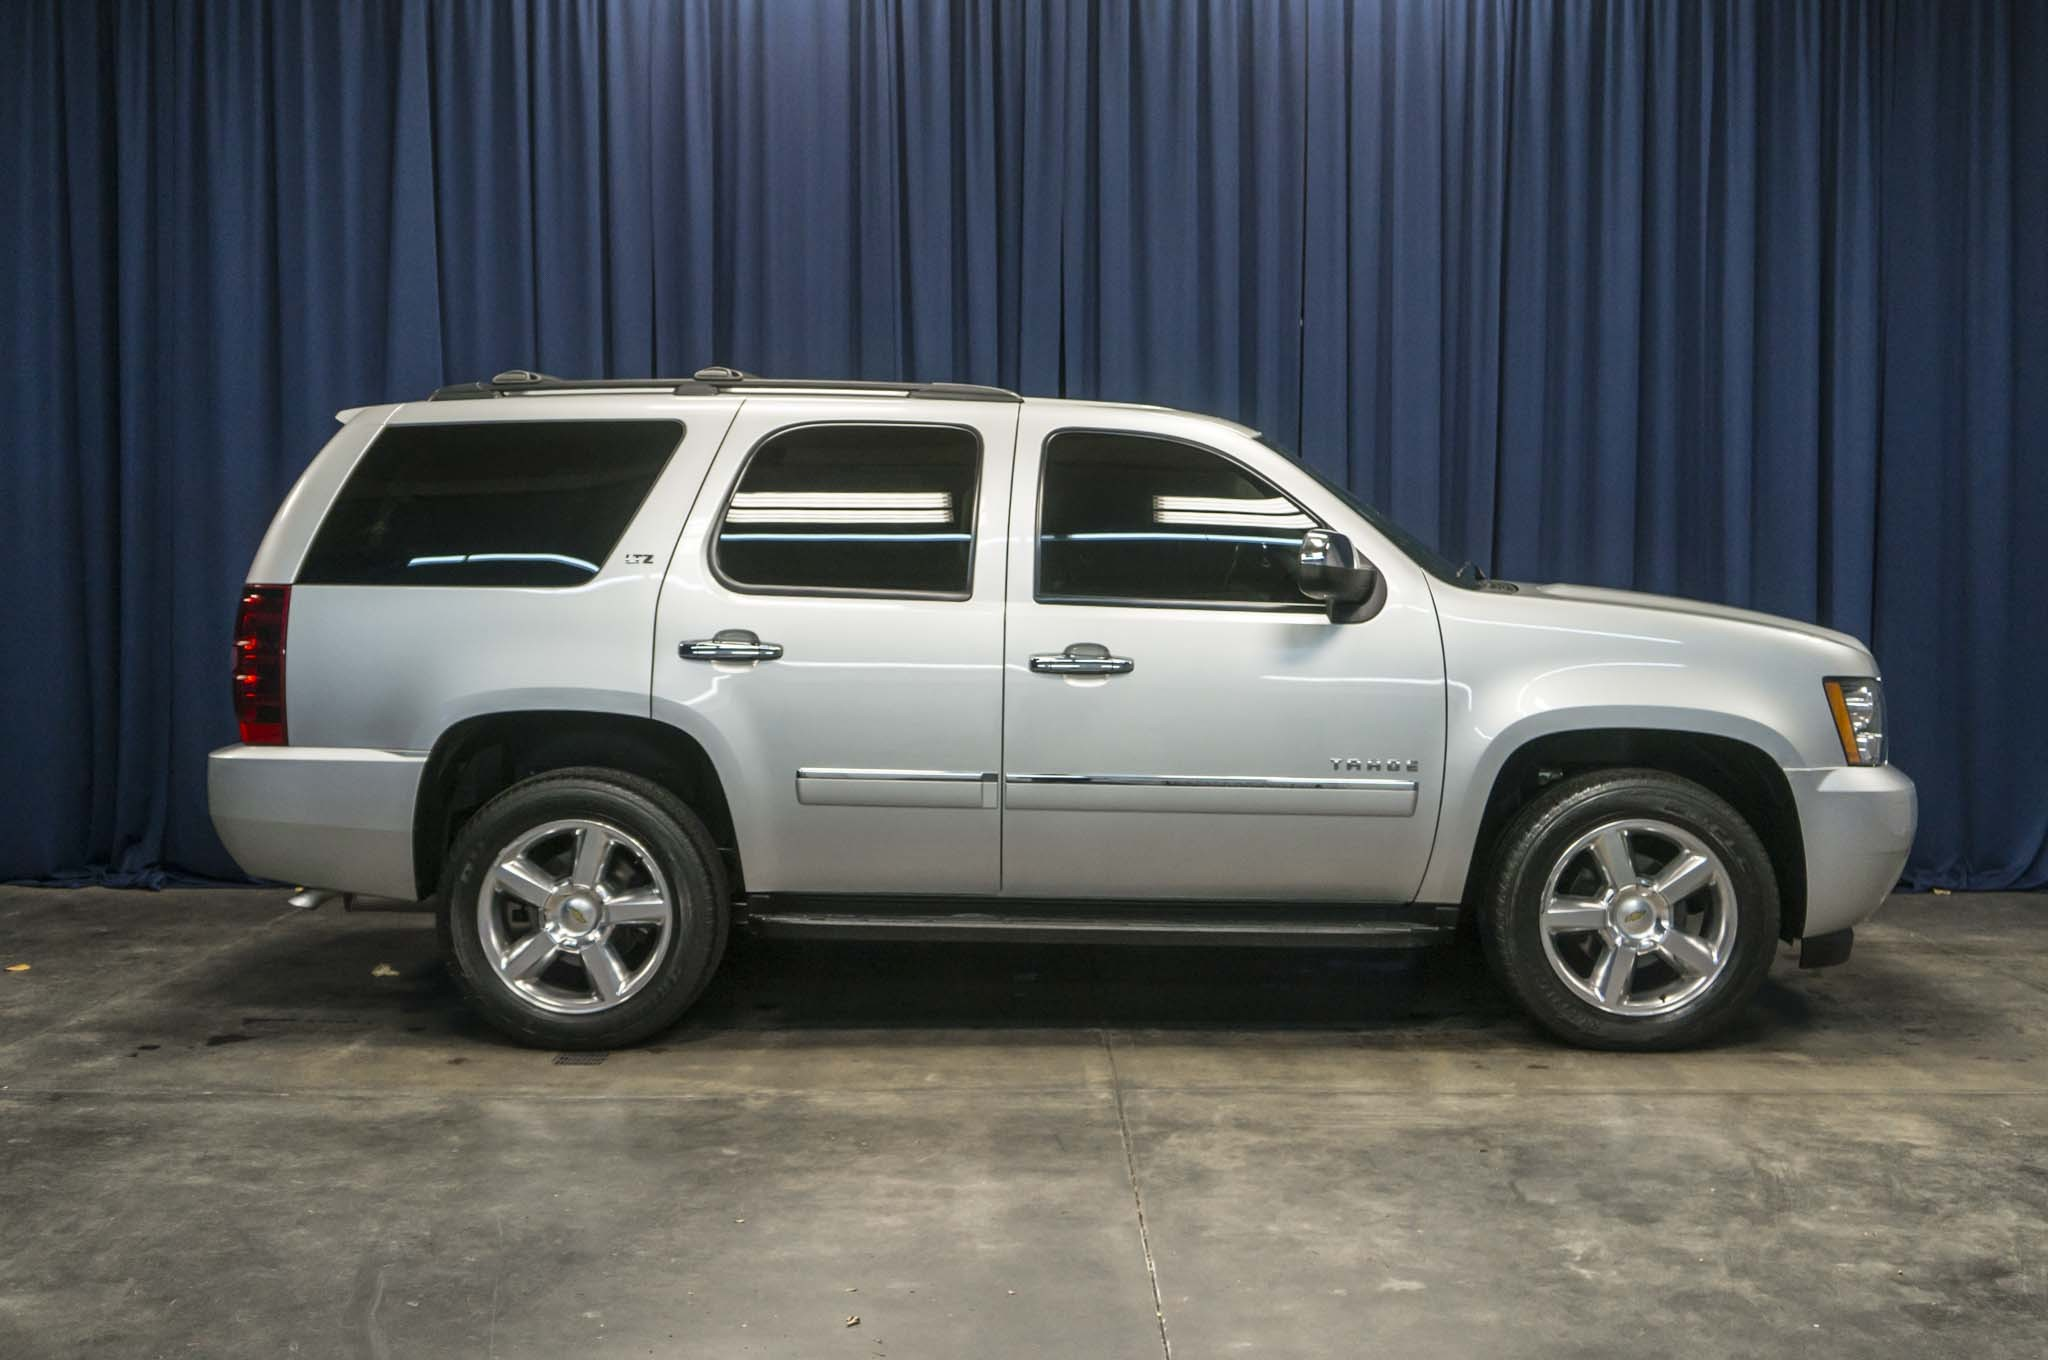 Used 2012 Chevrolet Tahoe LTZ 4x4 SUV For Sale